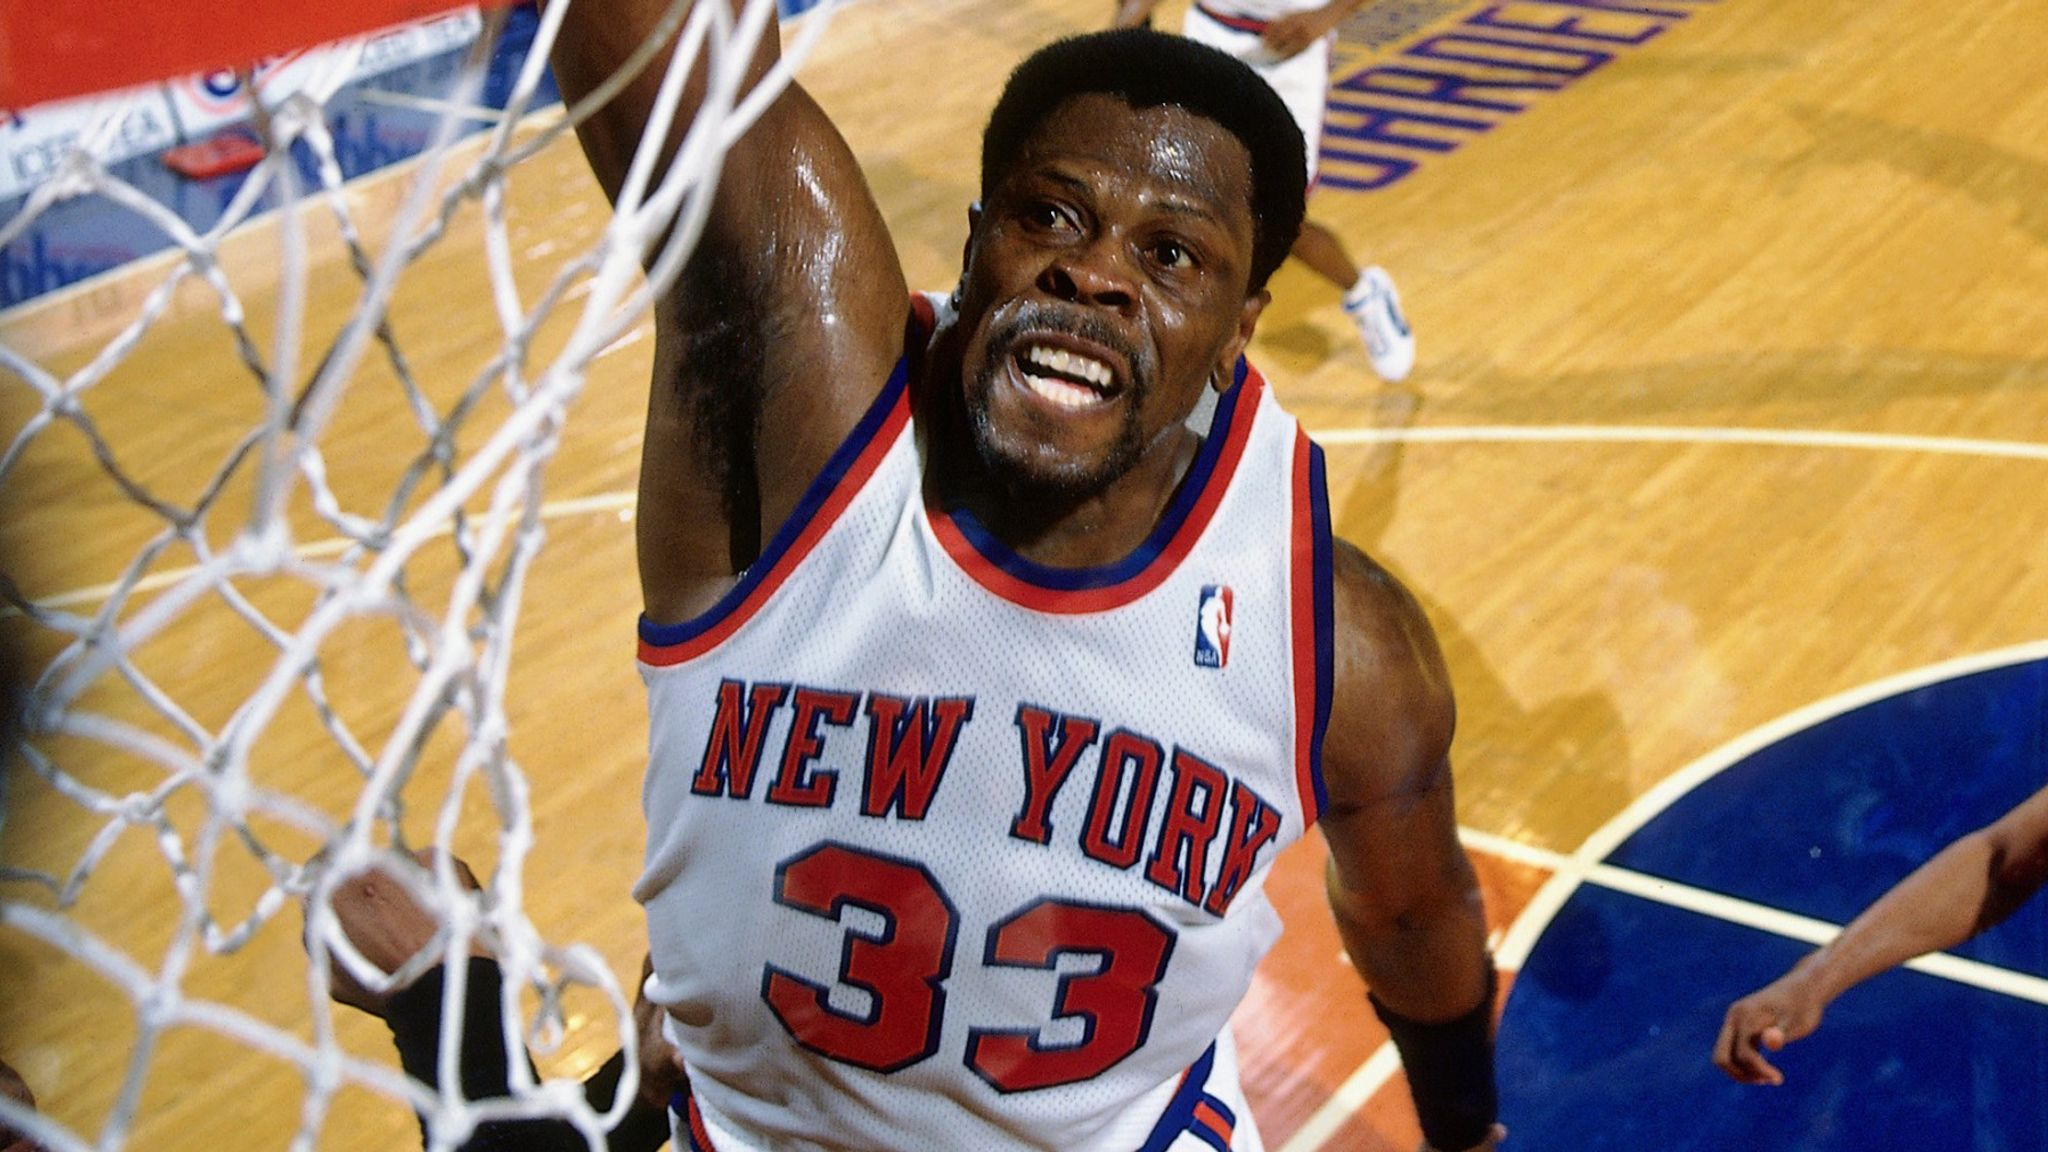 Nba Quiz How Much Do You Know About The New York Knicks Nba News Sky Sports